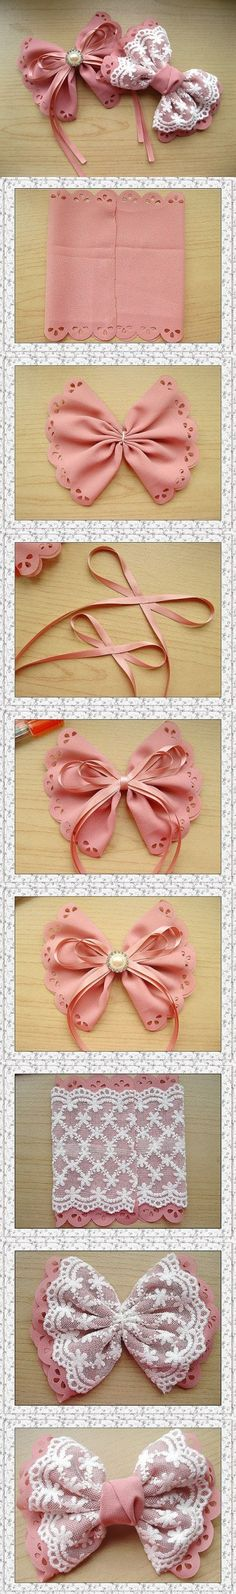 How to make your own lovely bow hairpin step by step DIY...